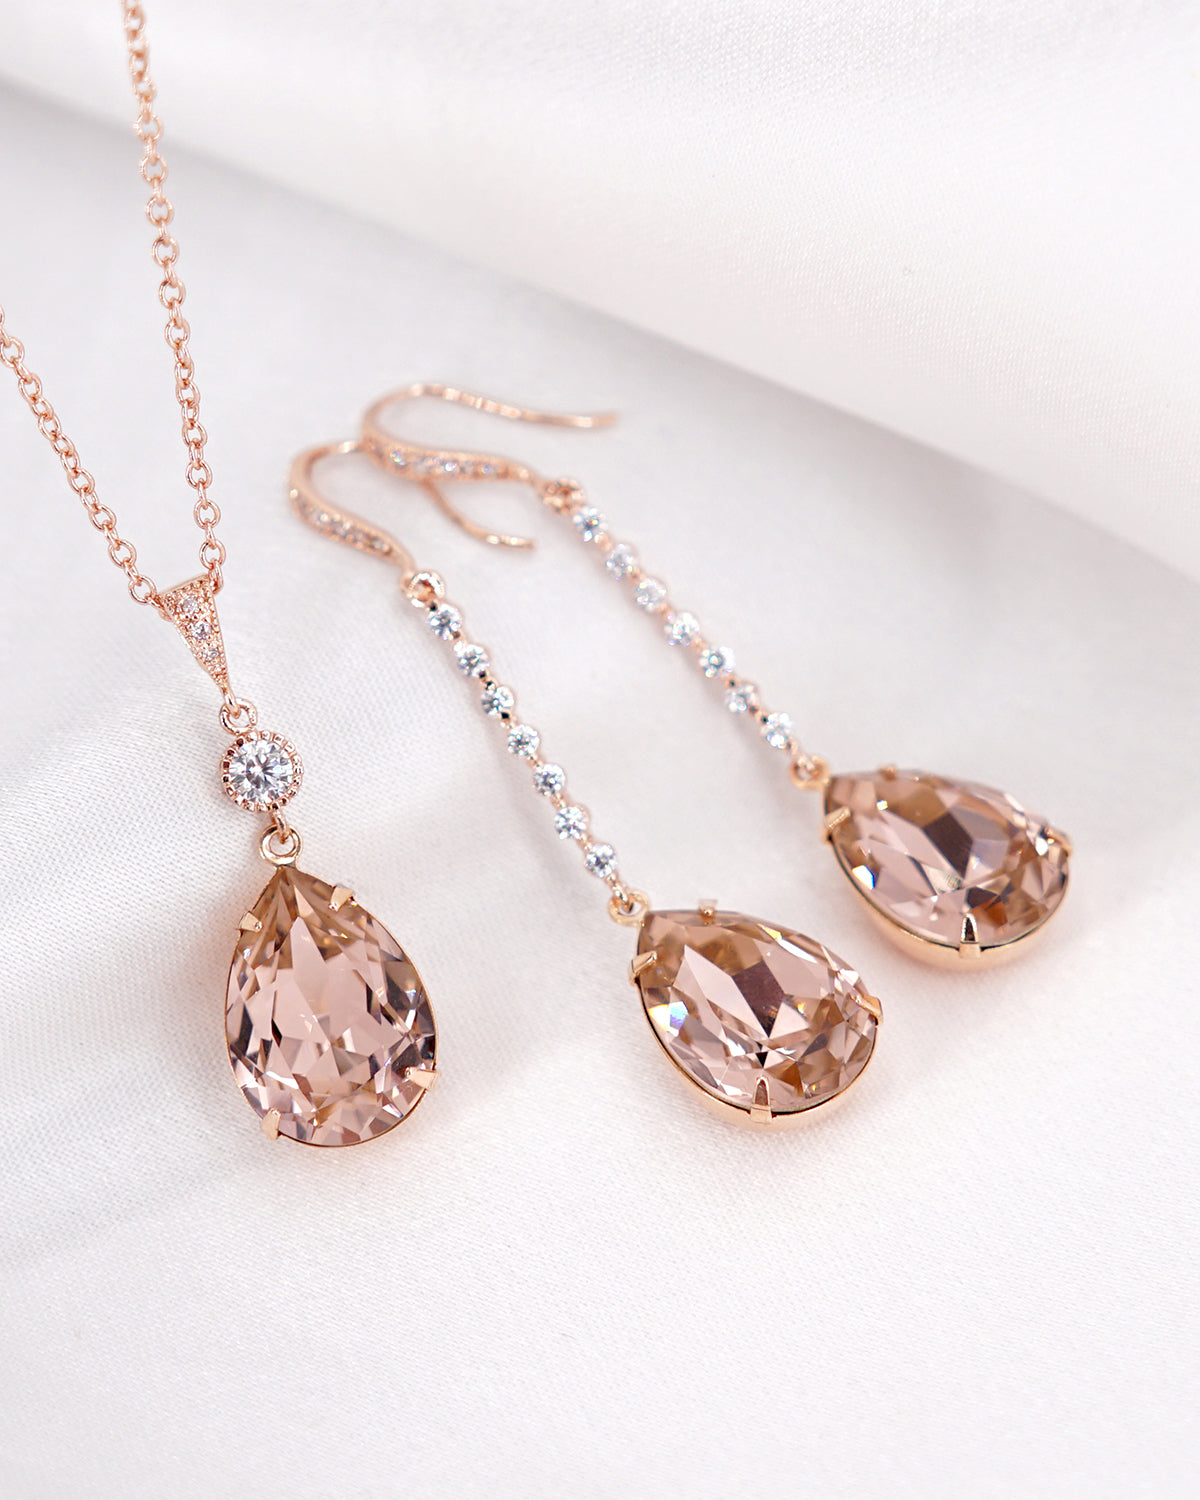 Rose Gold Pink Crystal Long Earrings and Necklace | Minimalist Bridal Wedding Brides